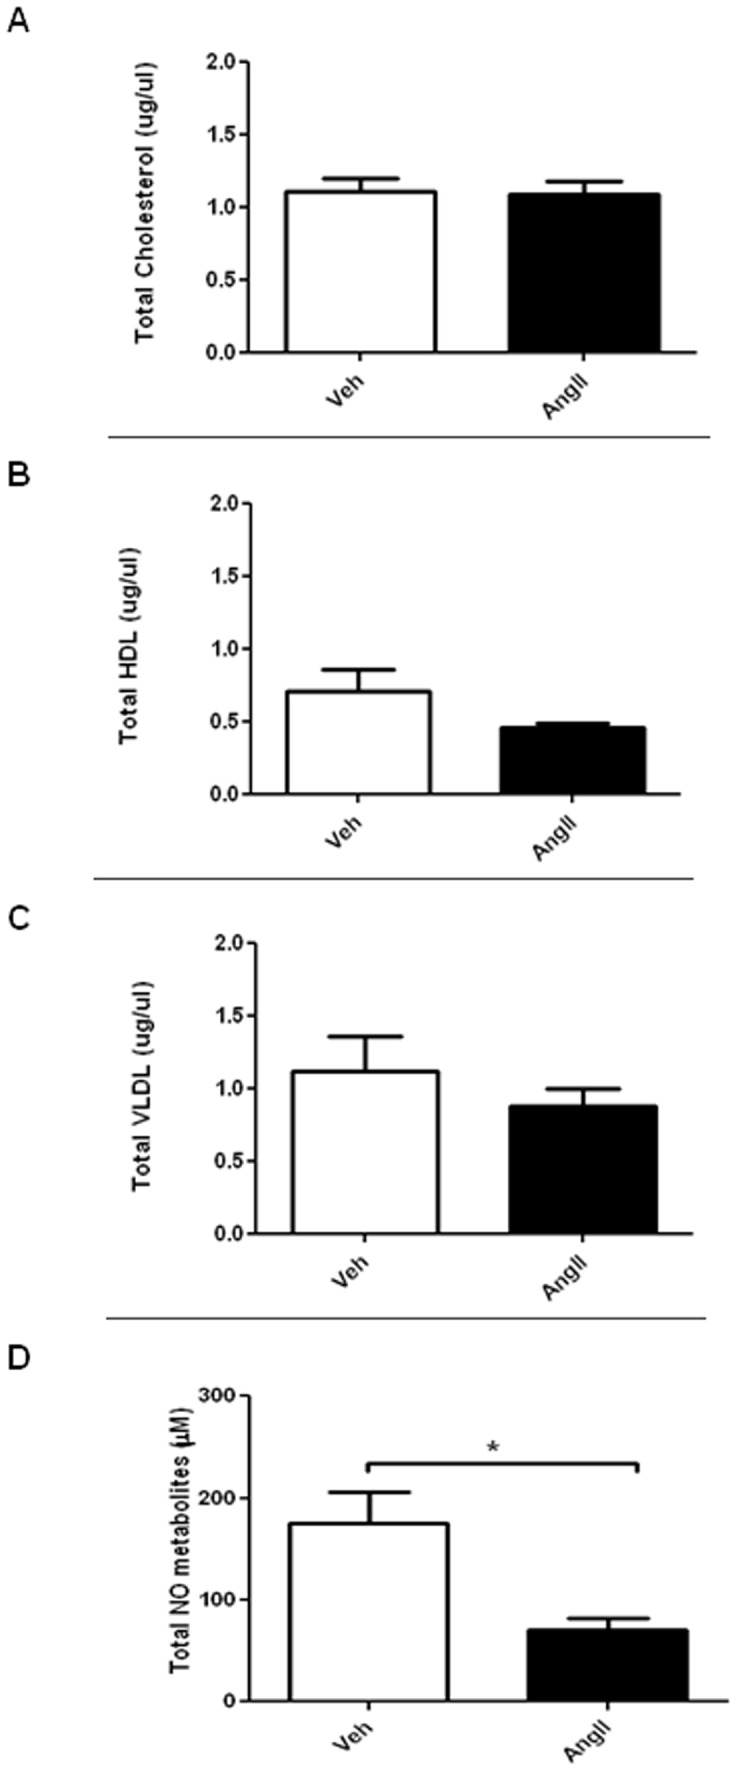 Effects of AngII infusion on plasma nitrite/nitrate, total cholesterol, high density lipoprotein <t>(HDL)</t> and very low density lipoprotein <t>(VLDL).</t> Box plots showing plasma (A) total cholesterol; (B) HDL, (C) VLDL and (D) total NO metabolites in saline-infused (Veh) and AngII -infused (AngII) ApoE −/− mice. Results are mean±SEM; n = 5; Statistical significance shown as *P